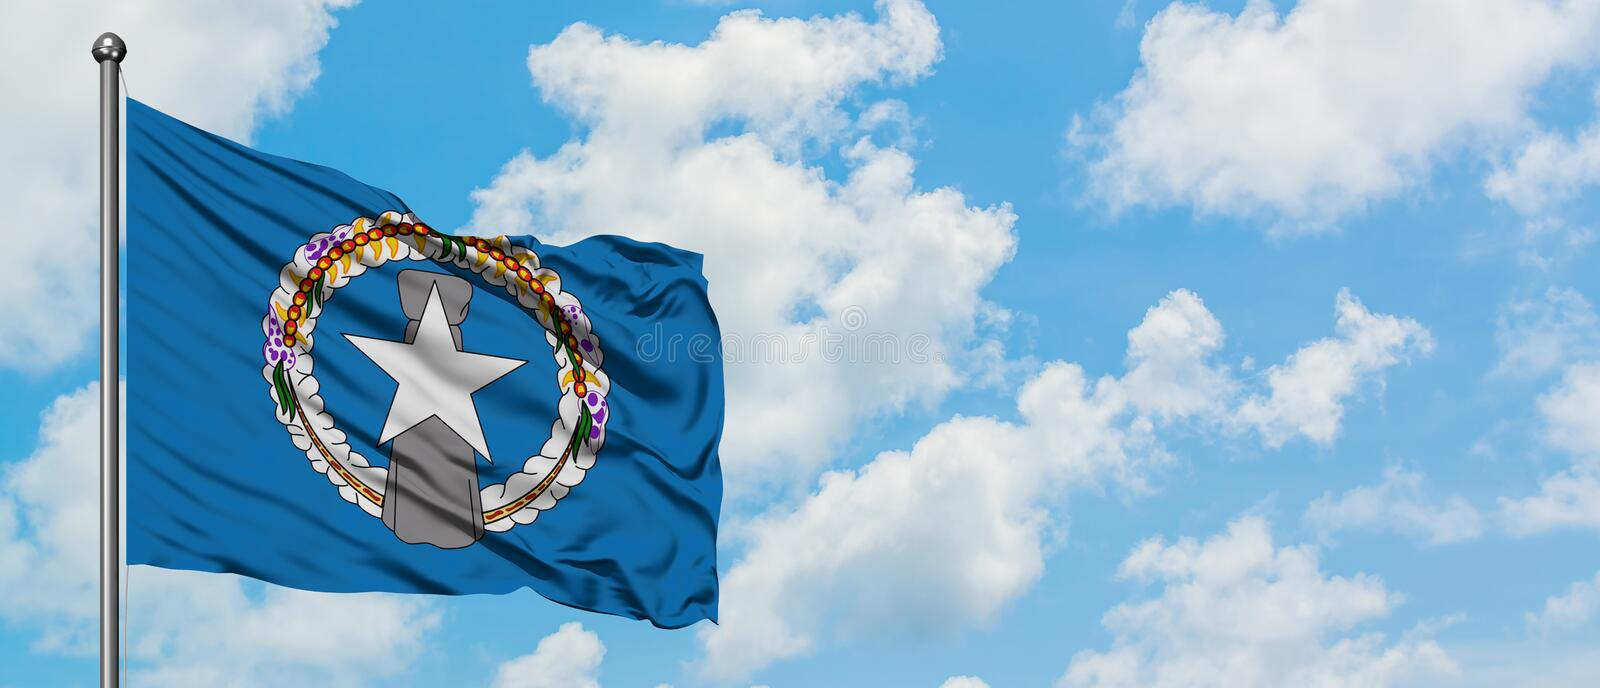 Northern Mariana Islands flag waving in the wind against white cloudy blue sky. Diplomacy concept, international relations.  royalty free stock images